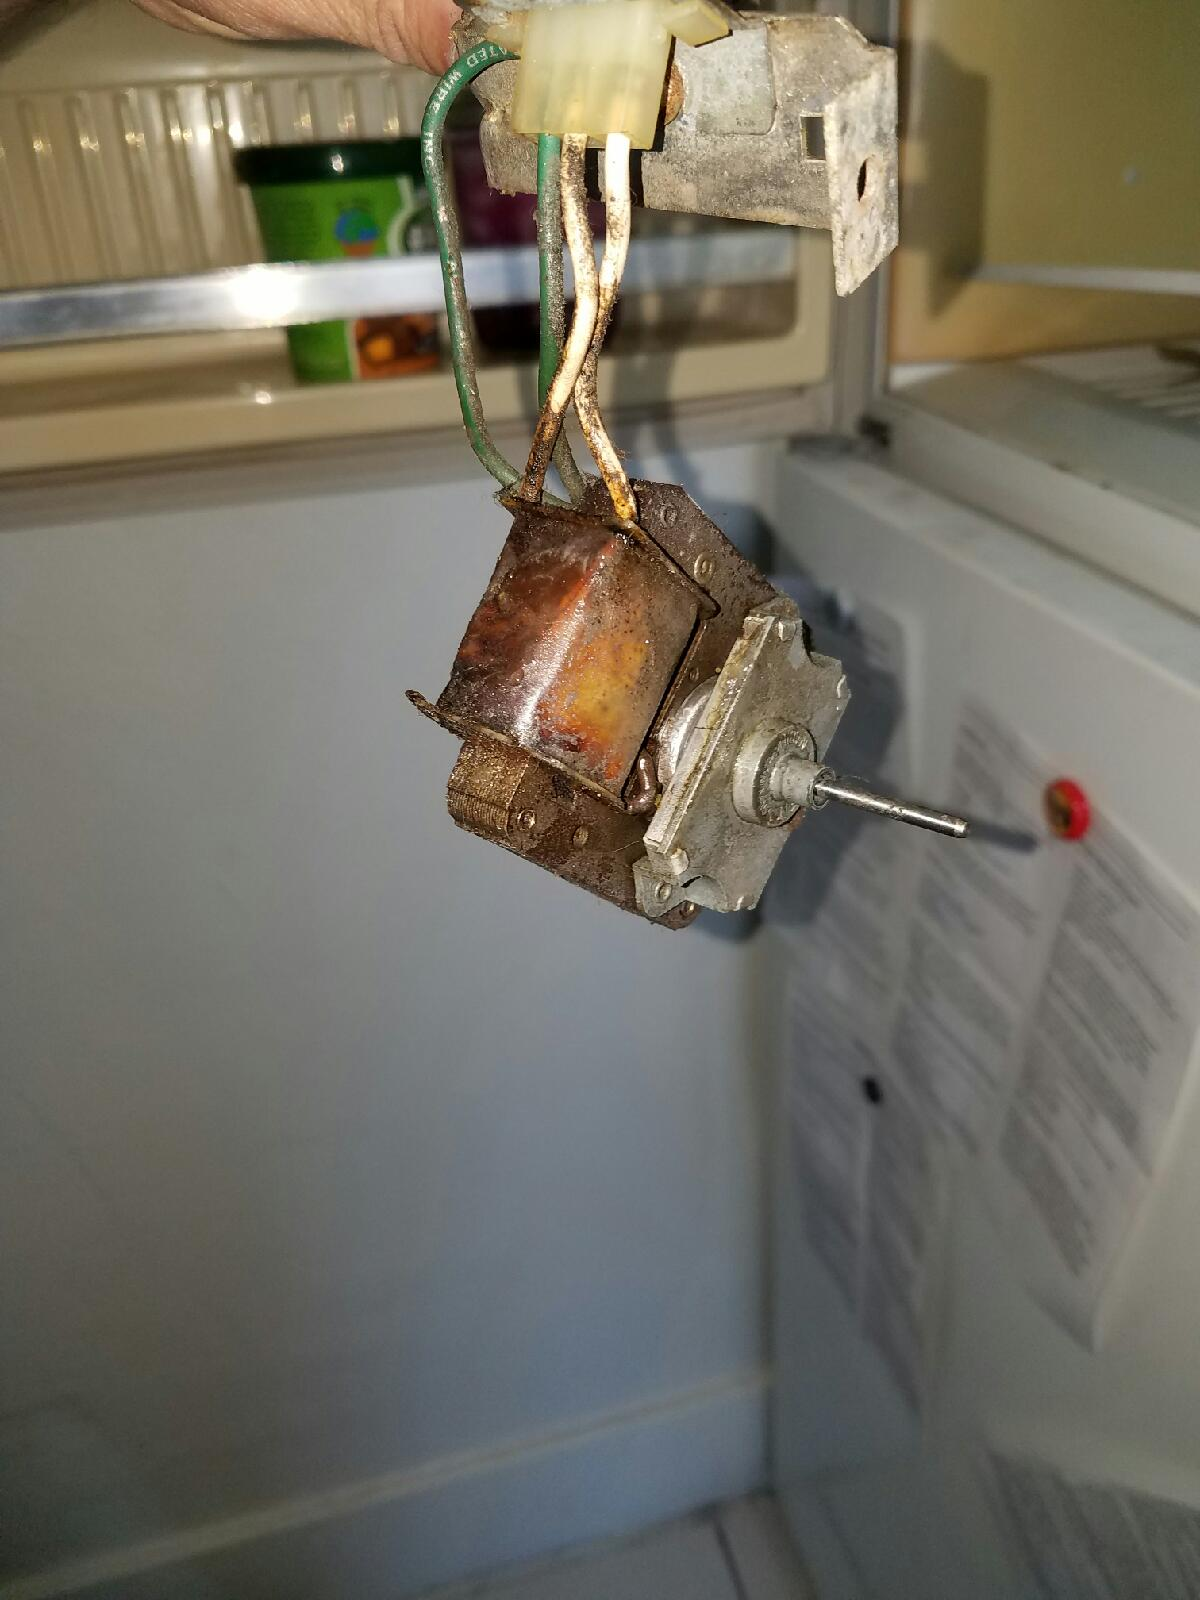 Is your refrigerator making a scraping or grinding sound